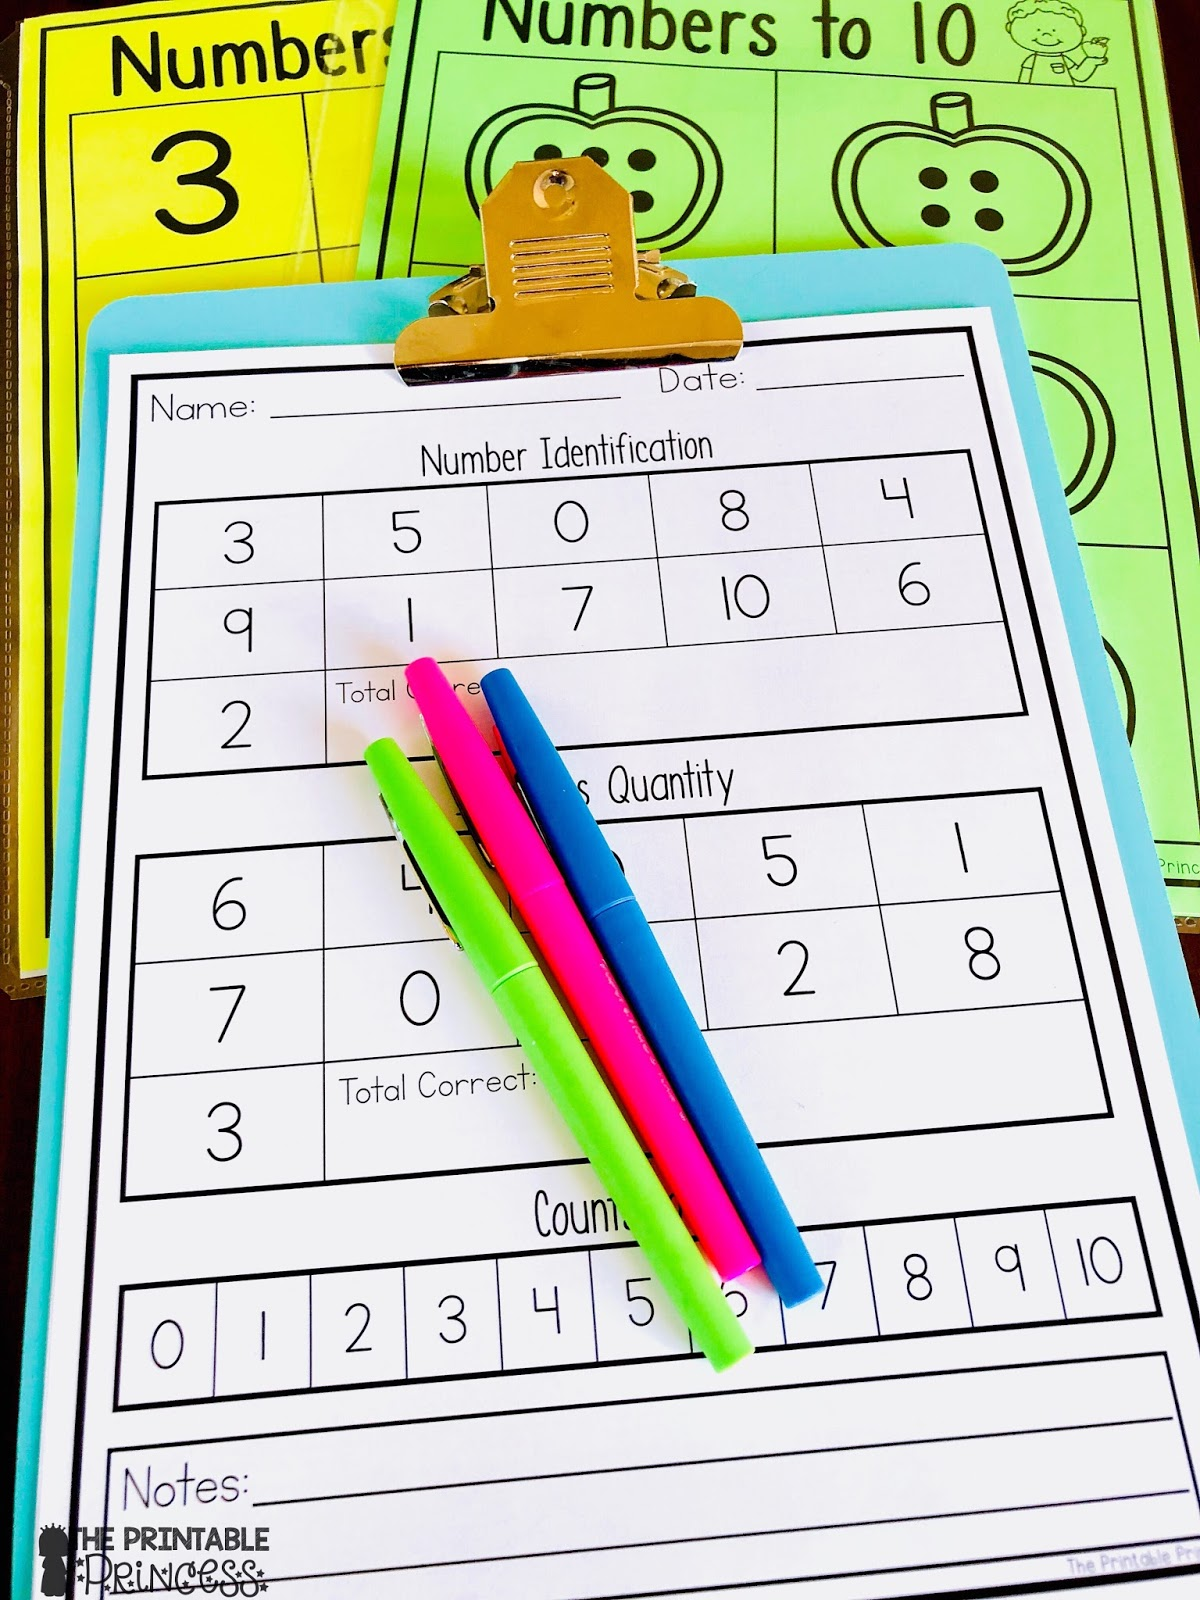 The Printable Princess Numbers To 10 Activities For